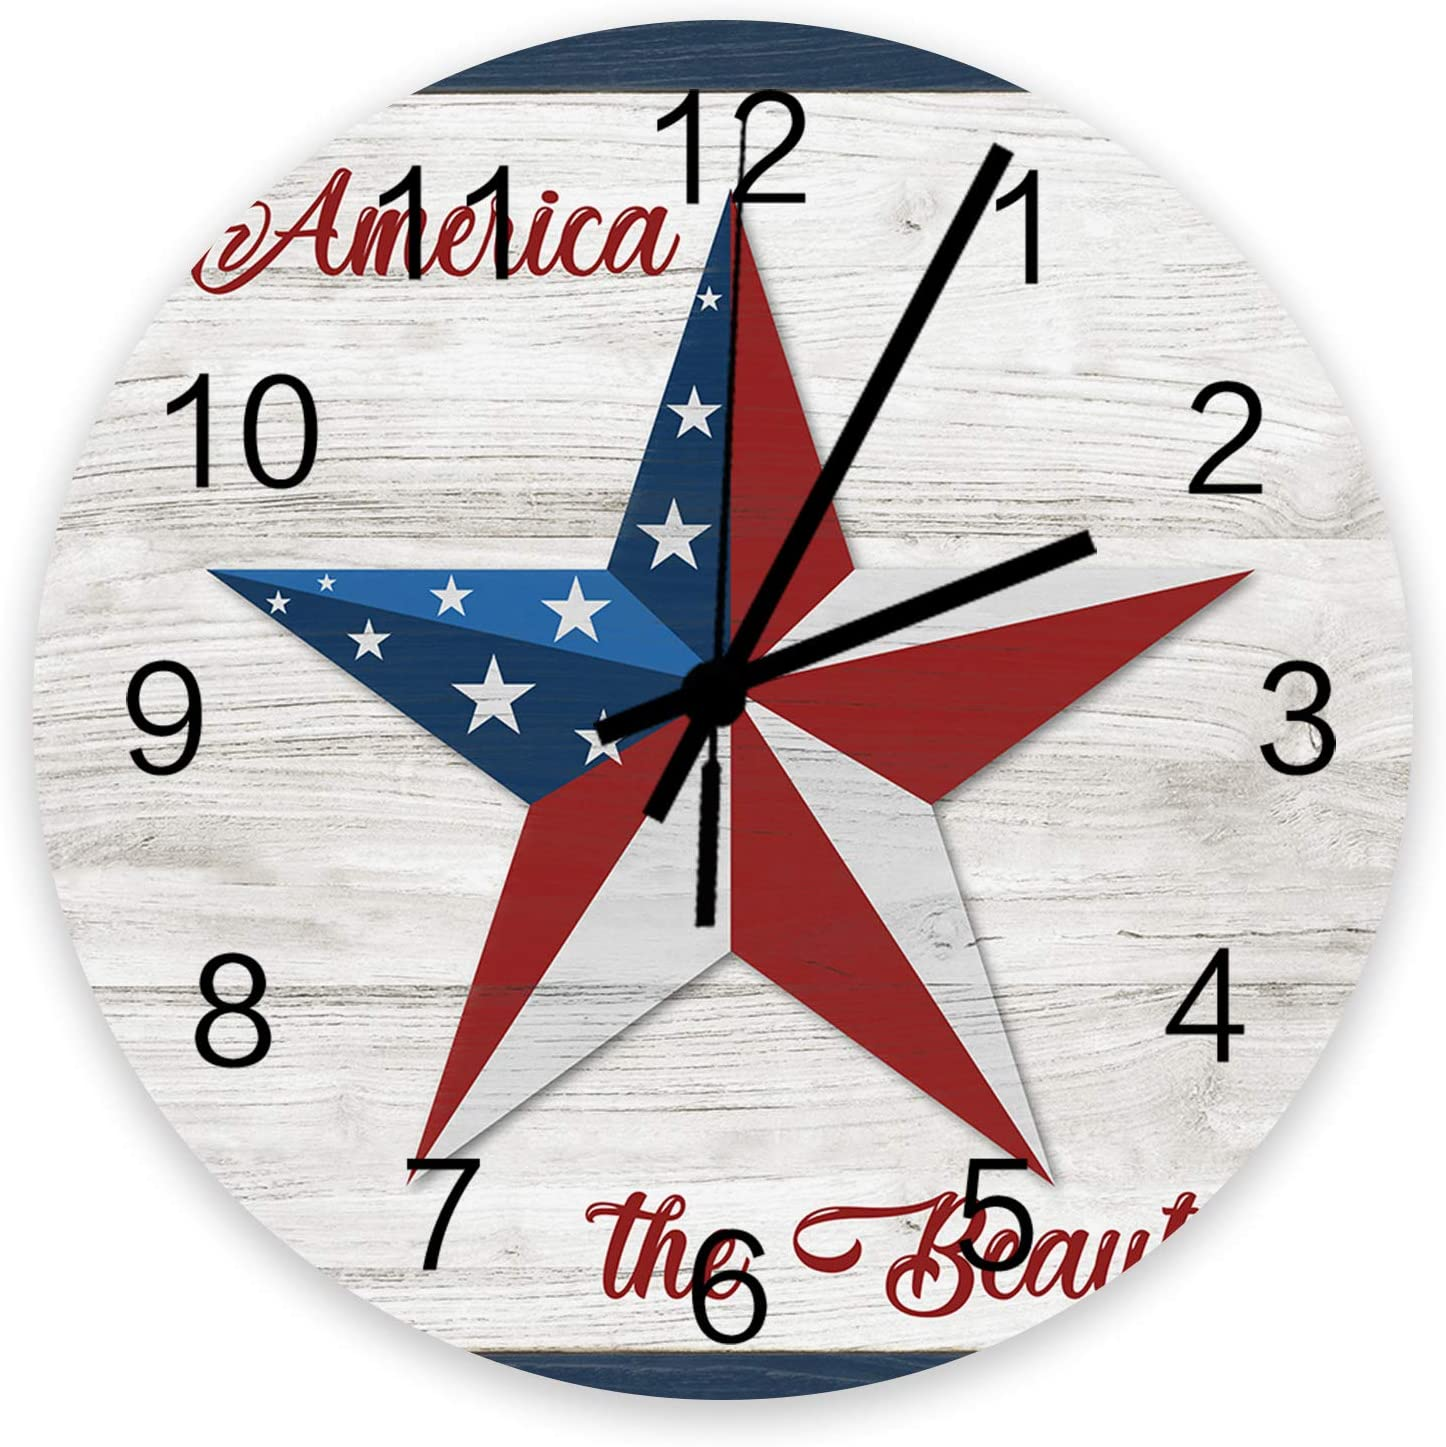 Roses Garden 12 Inch Max 80% OFF Wooden Wall Day Clock Max 86% OFF Flag Pe Independence